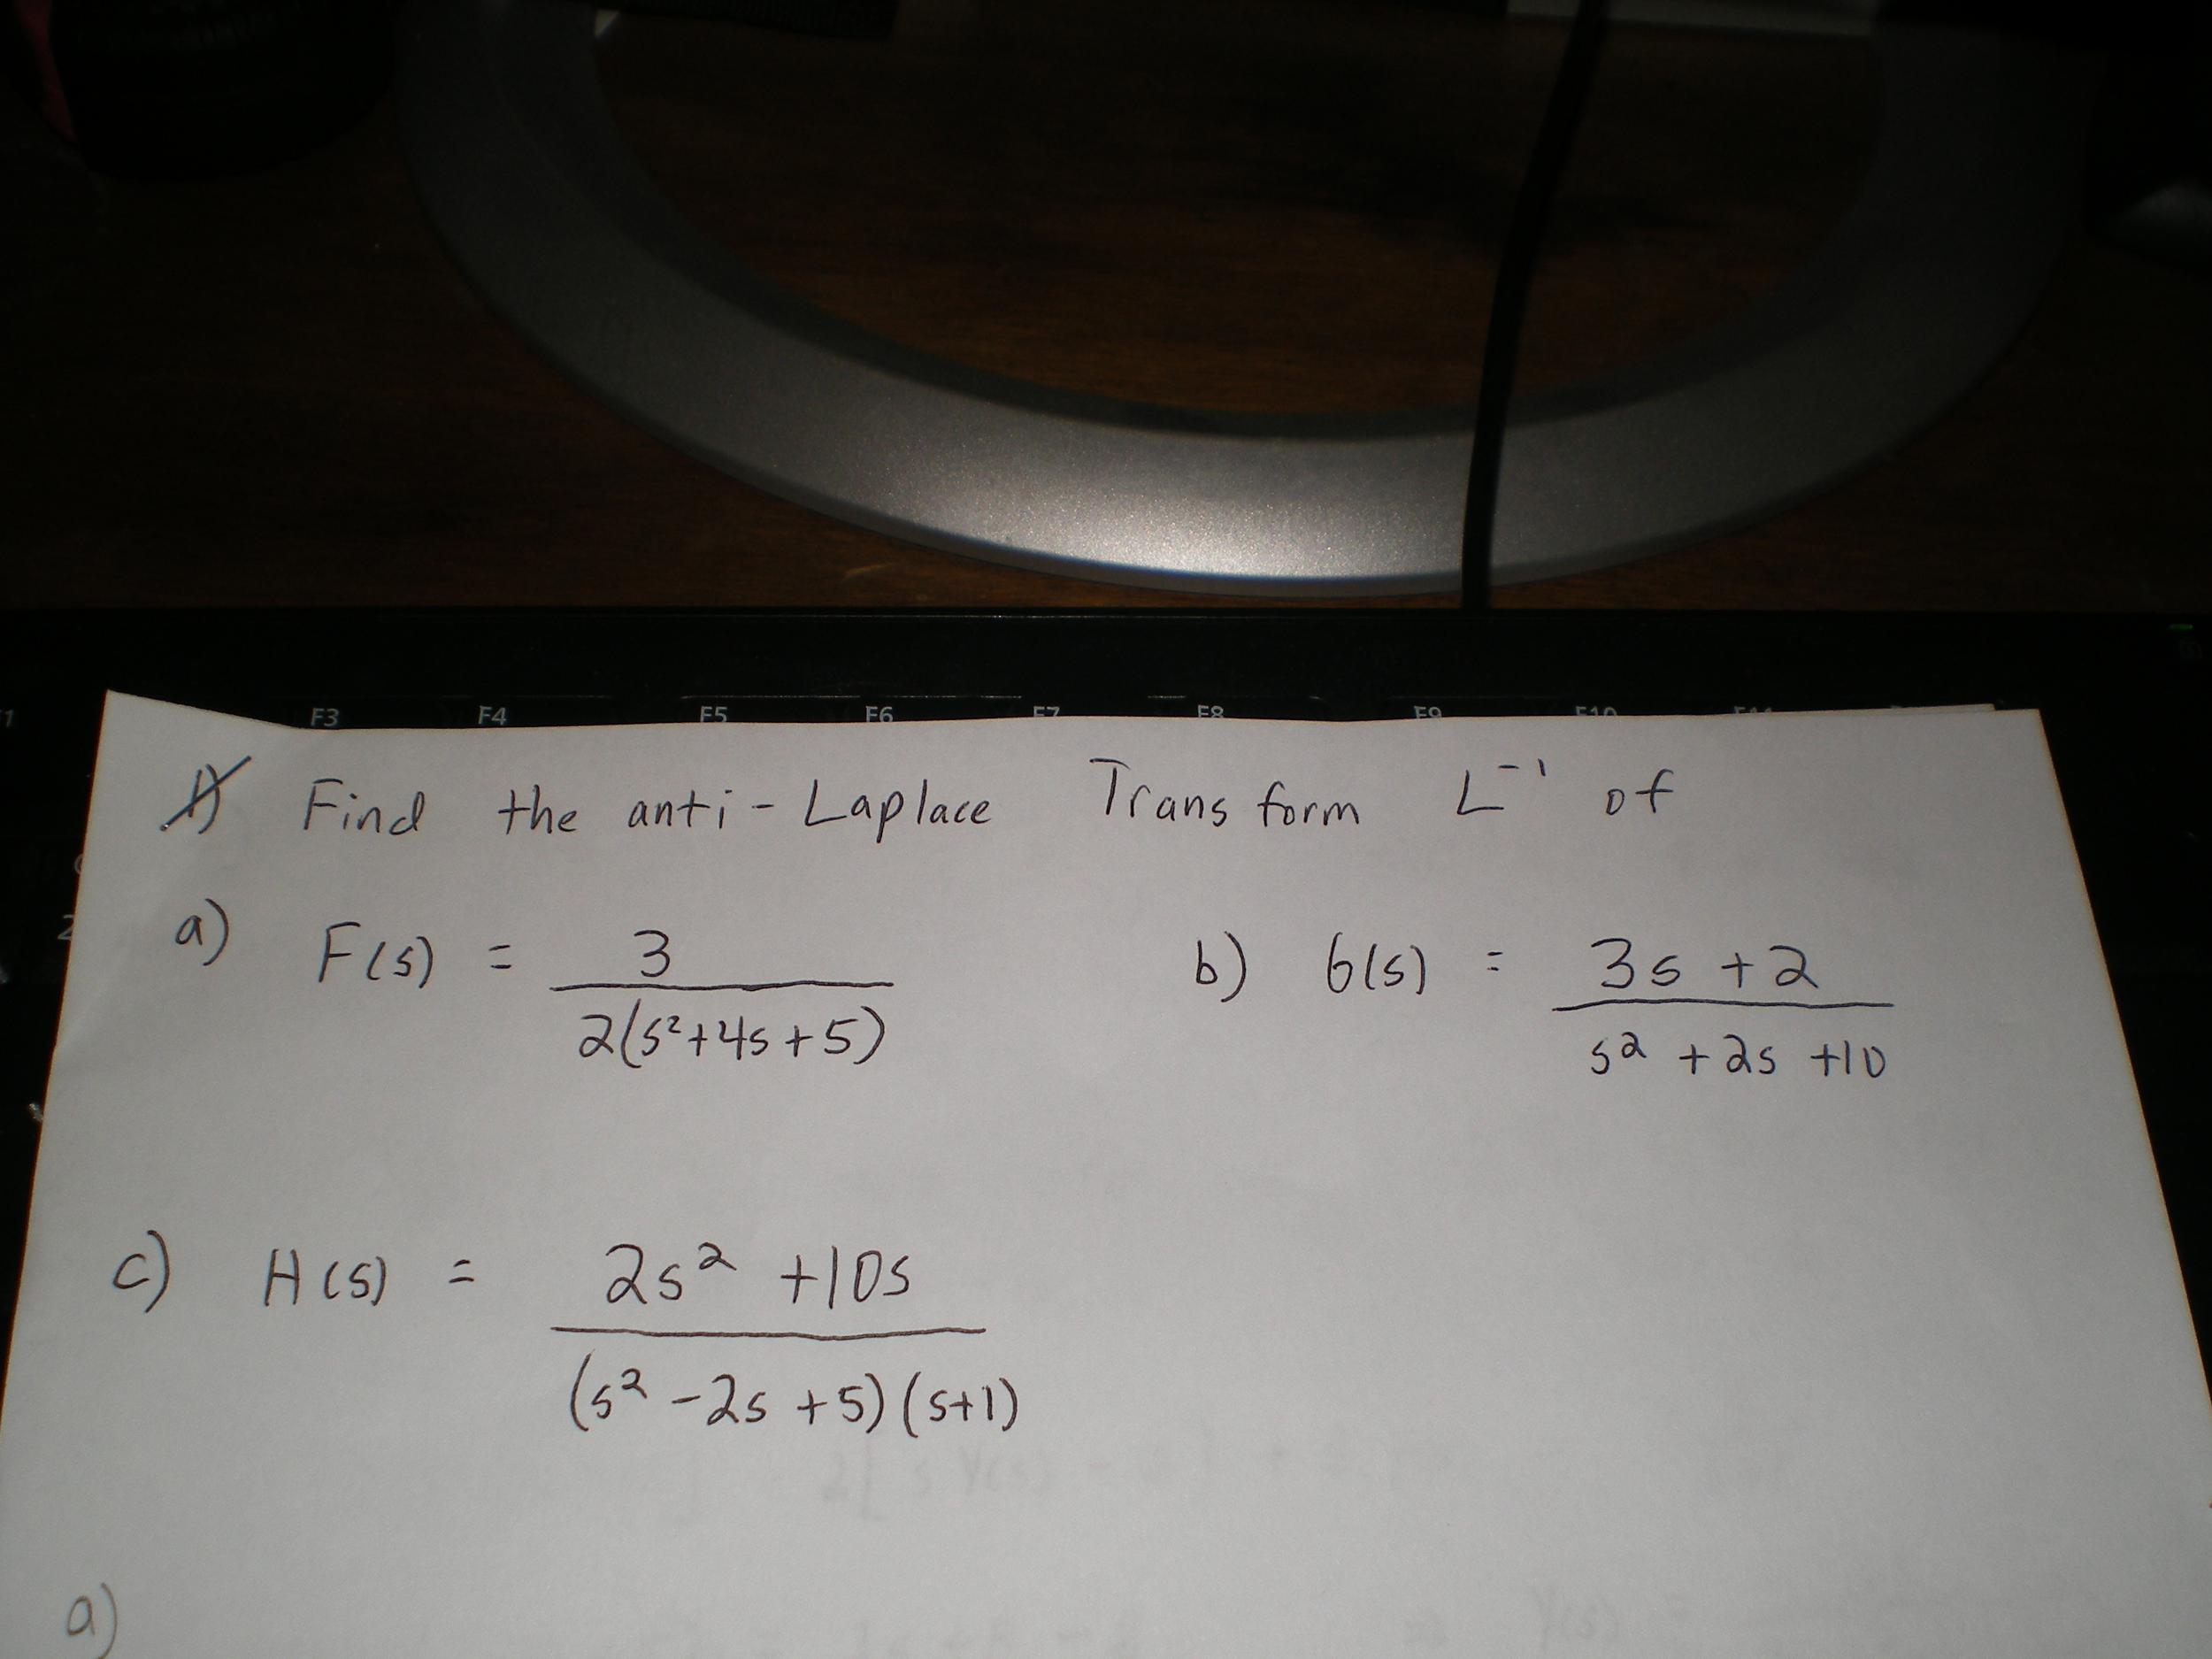 Find the anti - Laplace Transform L-1 of F(s) = 3